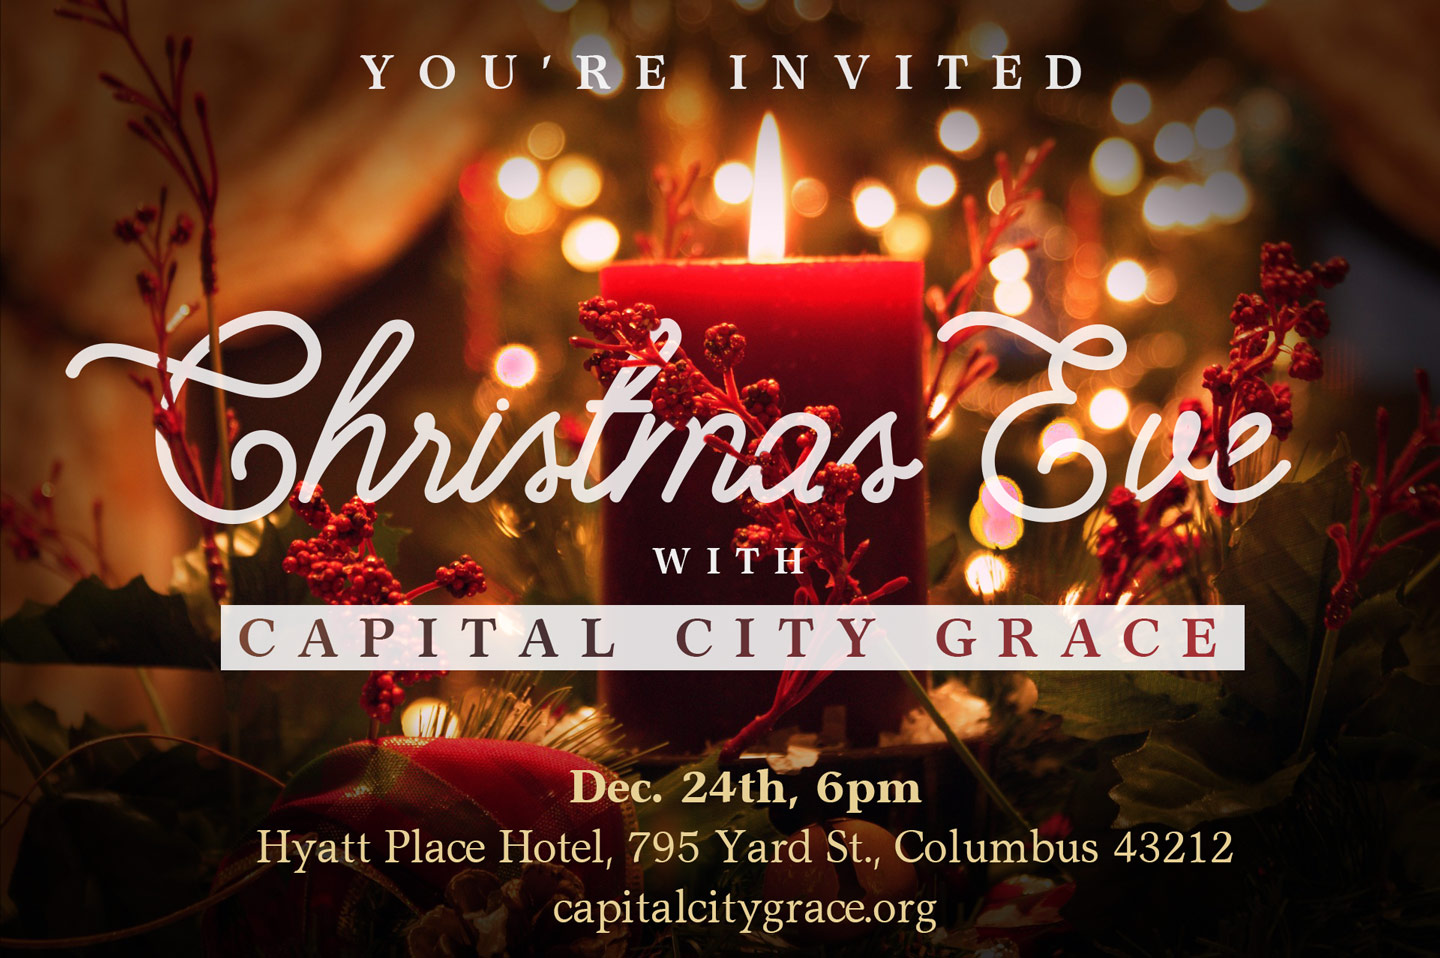 Christmas Church Services Near Me.Join Us At Our Christmas Eve Service Capital City Grace Church